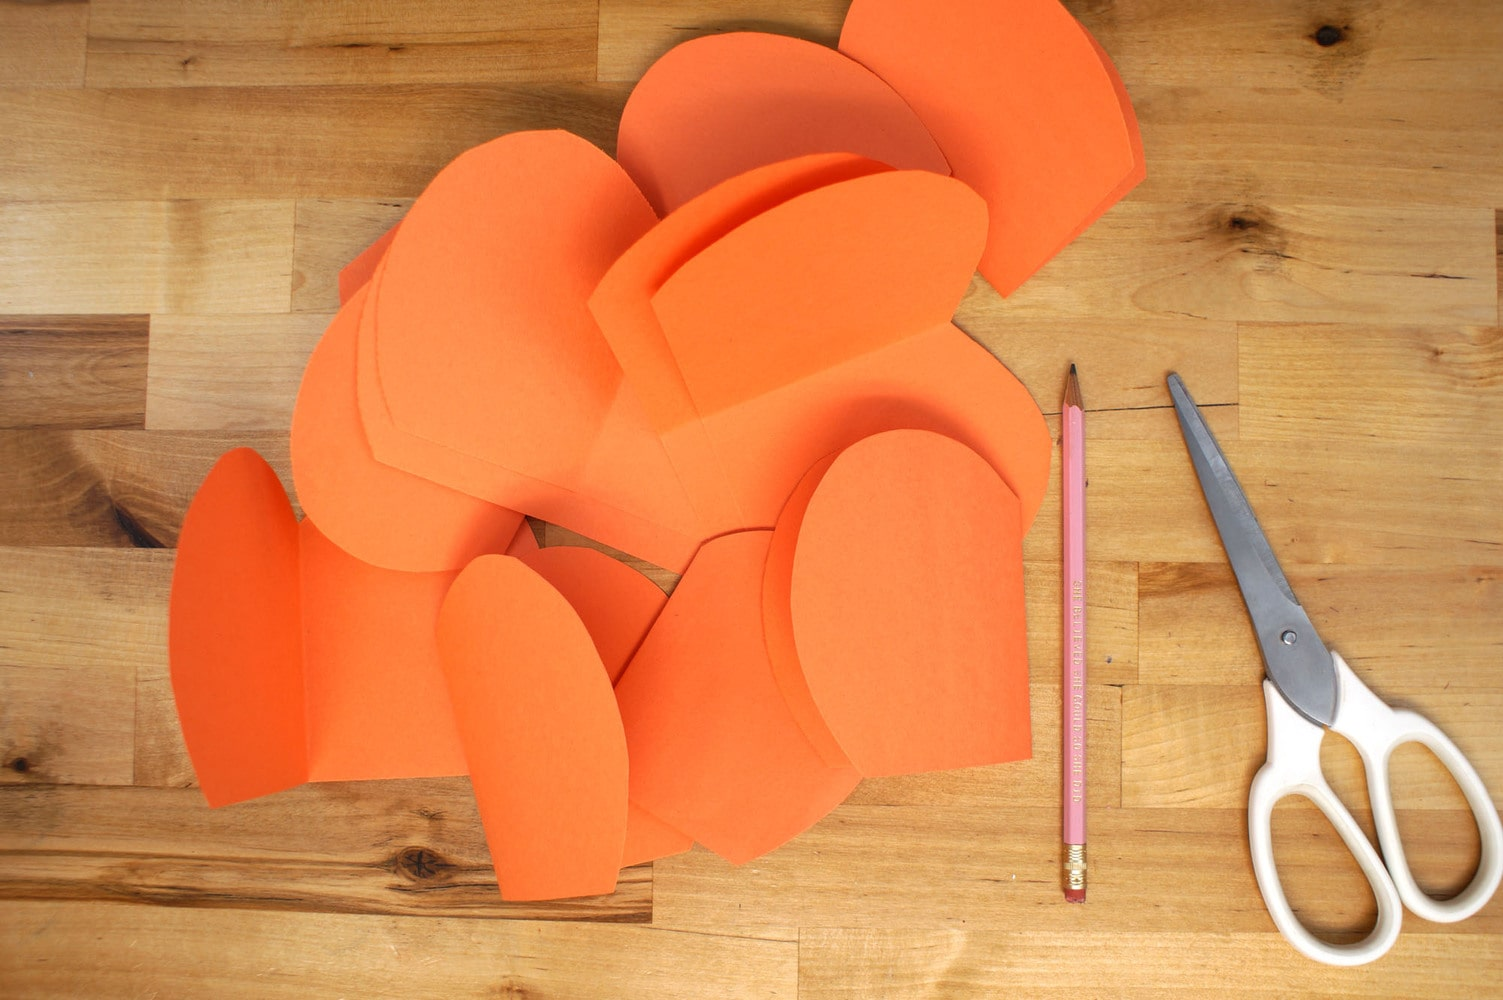 paper pumpkin slices cut from orange construction paper with pink pencil and a pair of scissors.